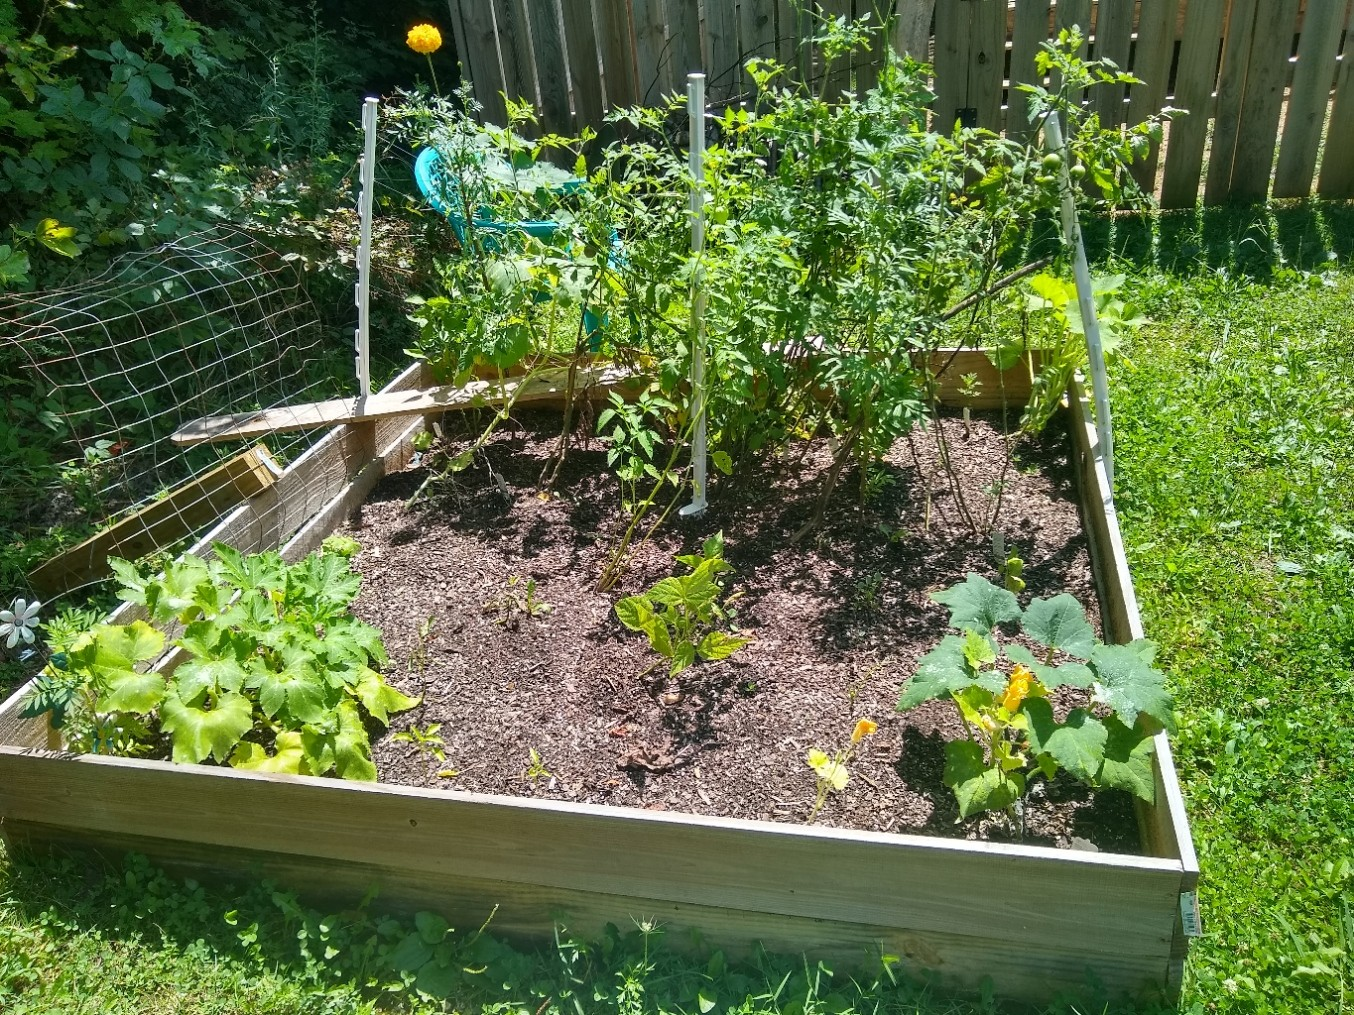 Vegetable garden successes and failures: Learning during lockdown-The Hot Mess Press